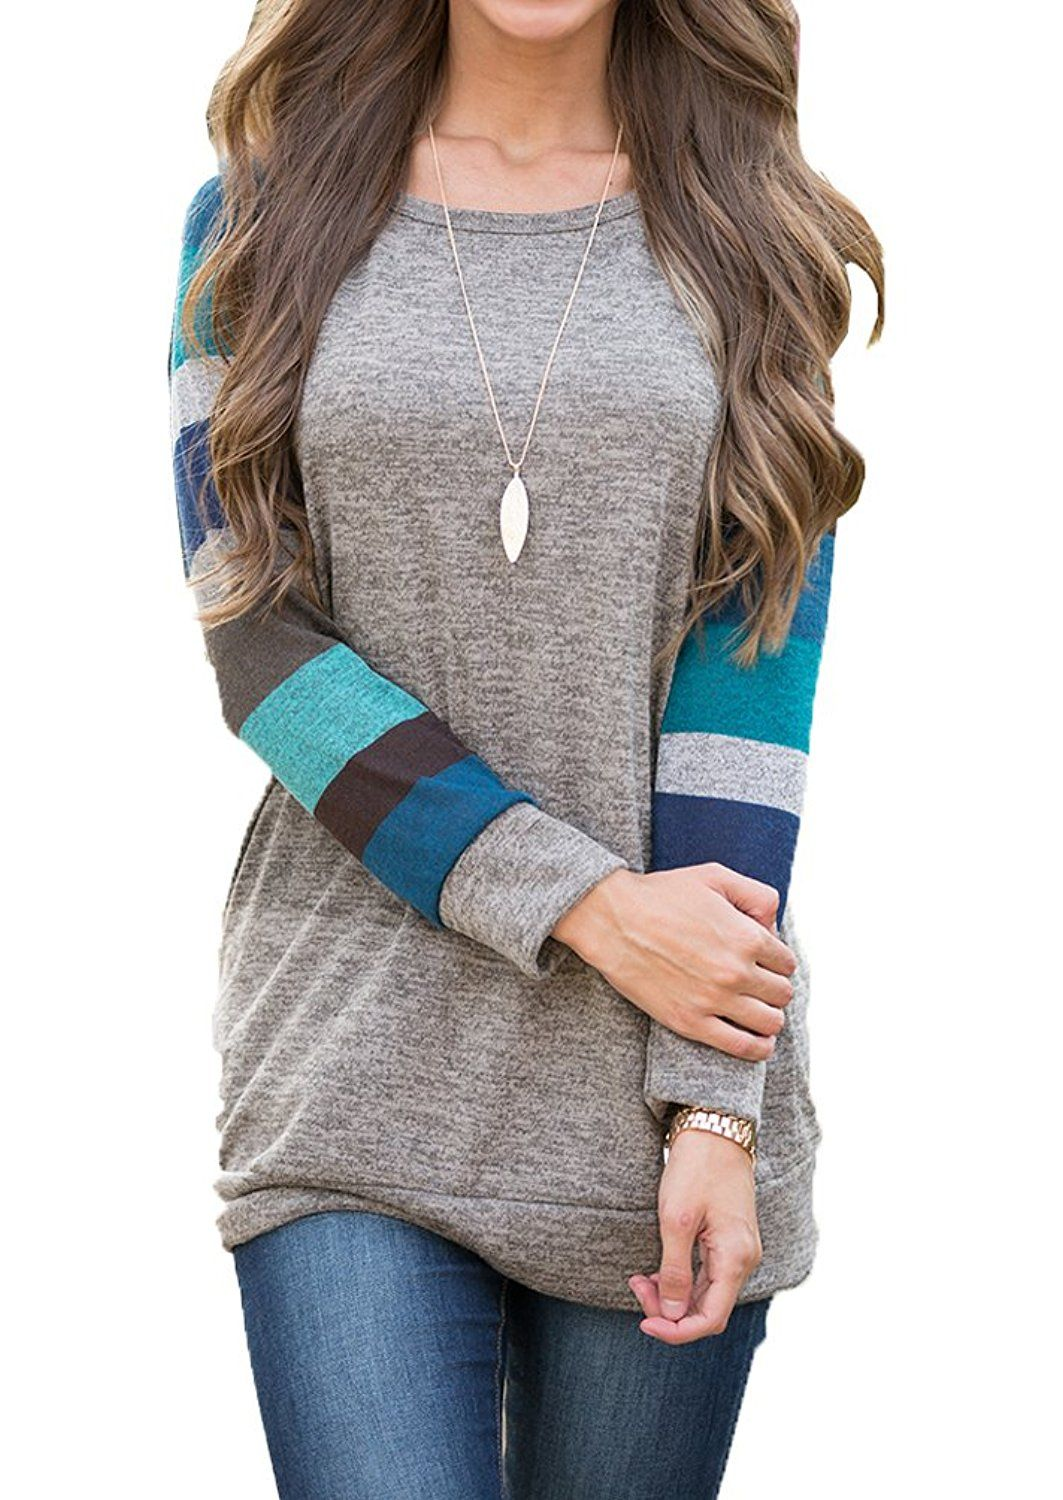 446ad263fa POSESHE Women's Cotton Knitted Long Sleeve Lightweight Tunic Sweatshirt Tops  at Amazon Women's Clothing store: